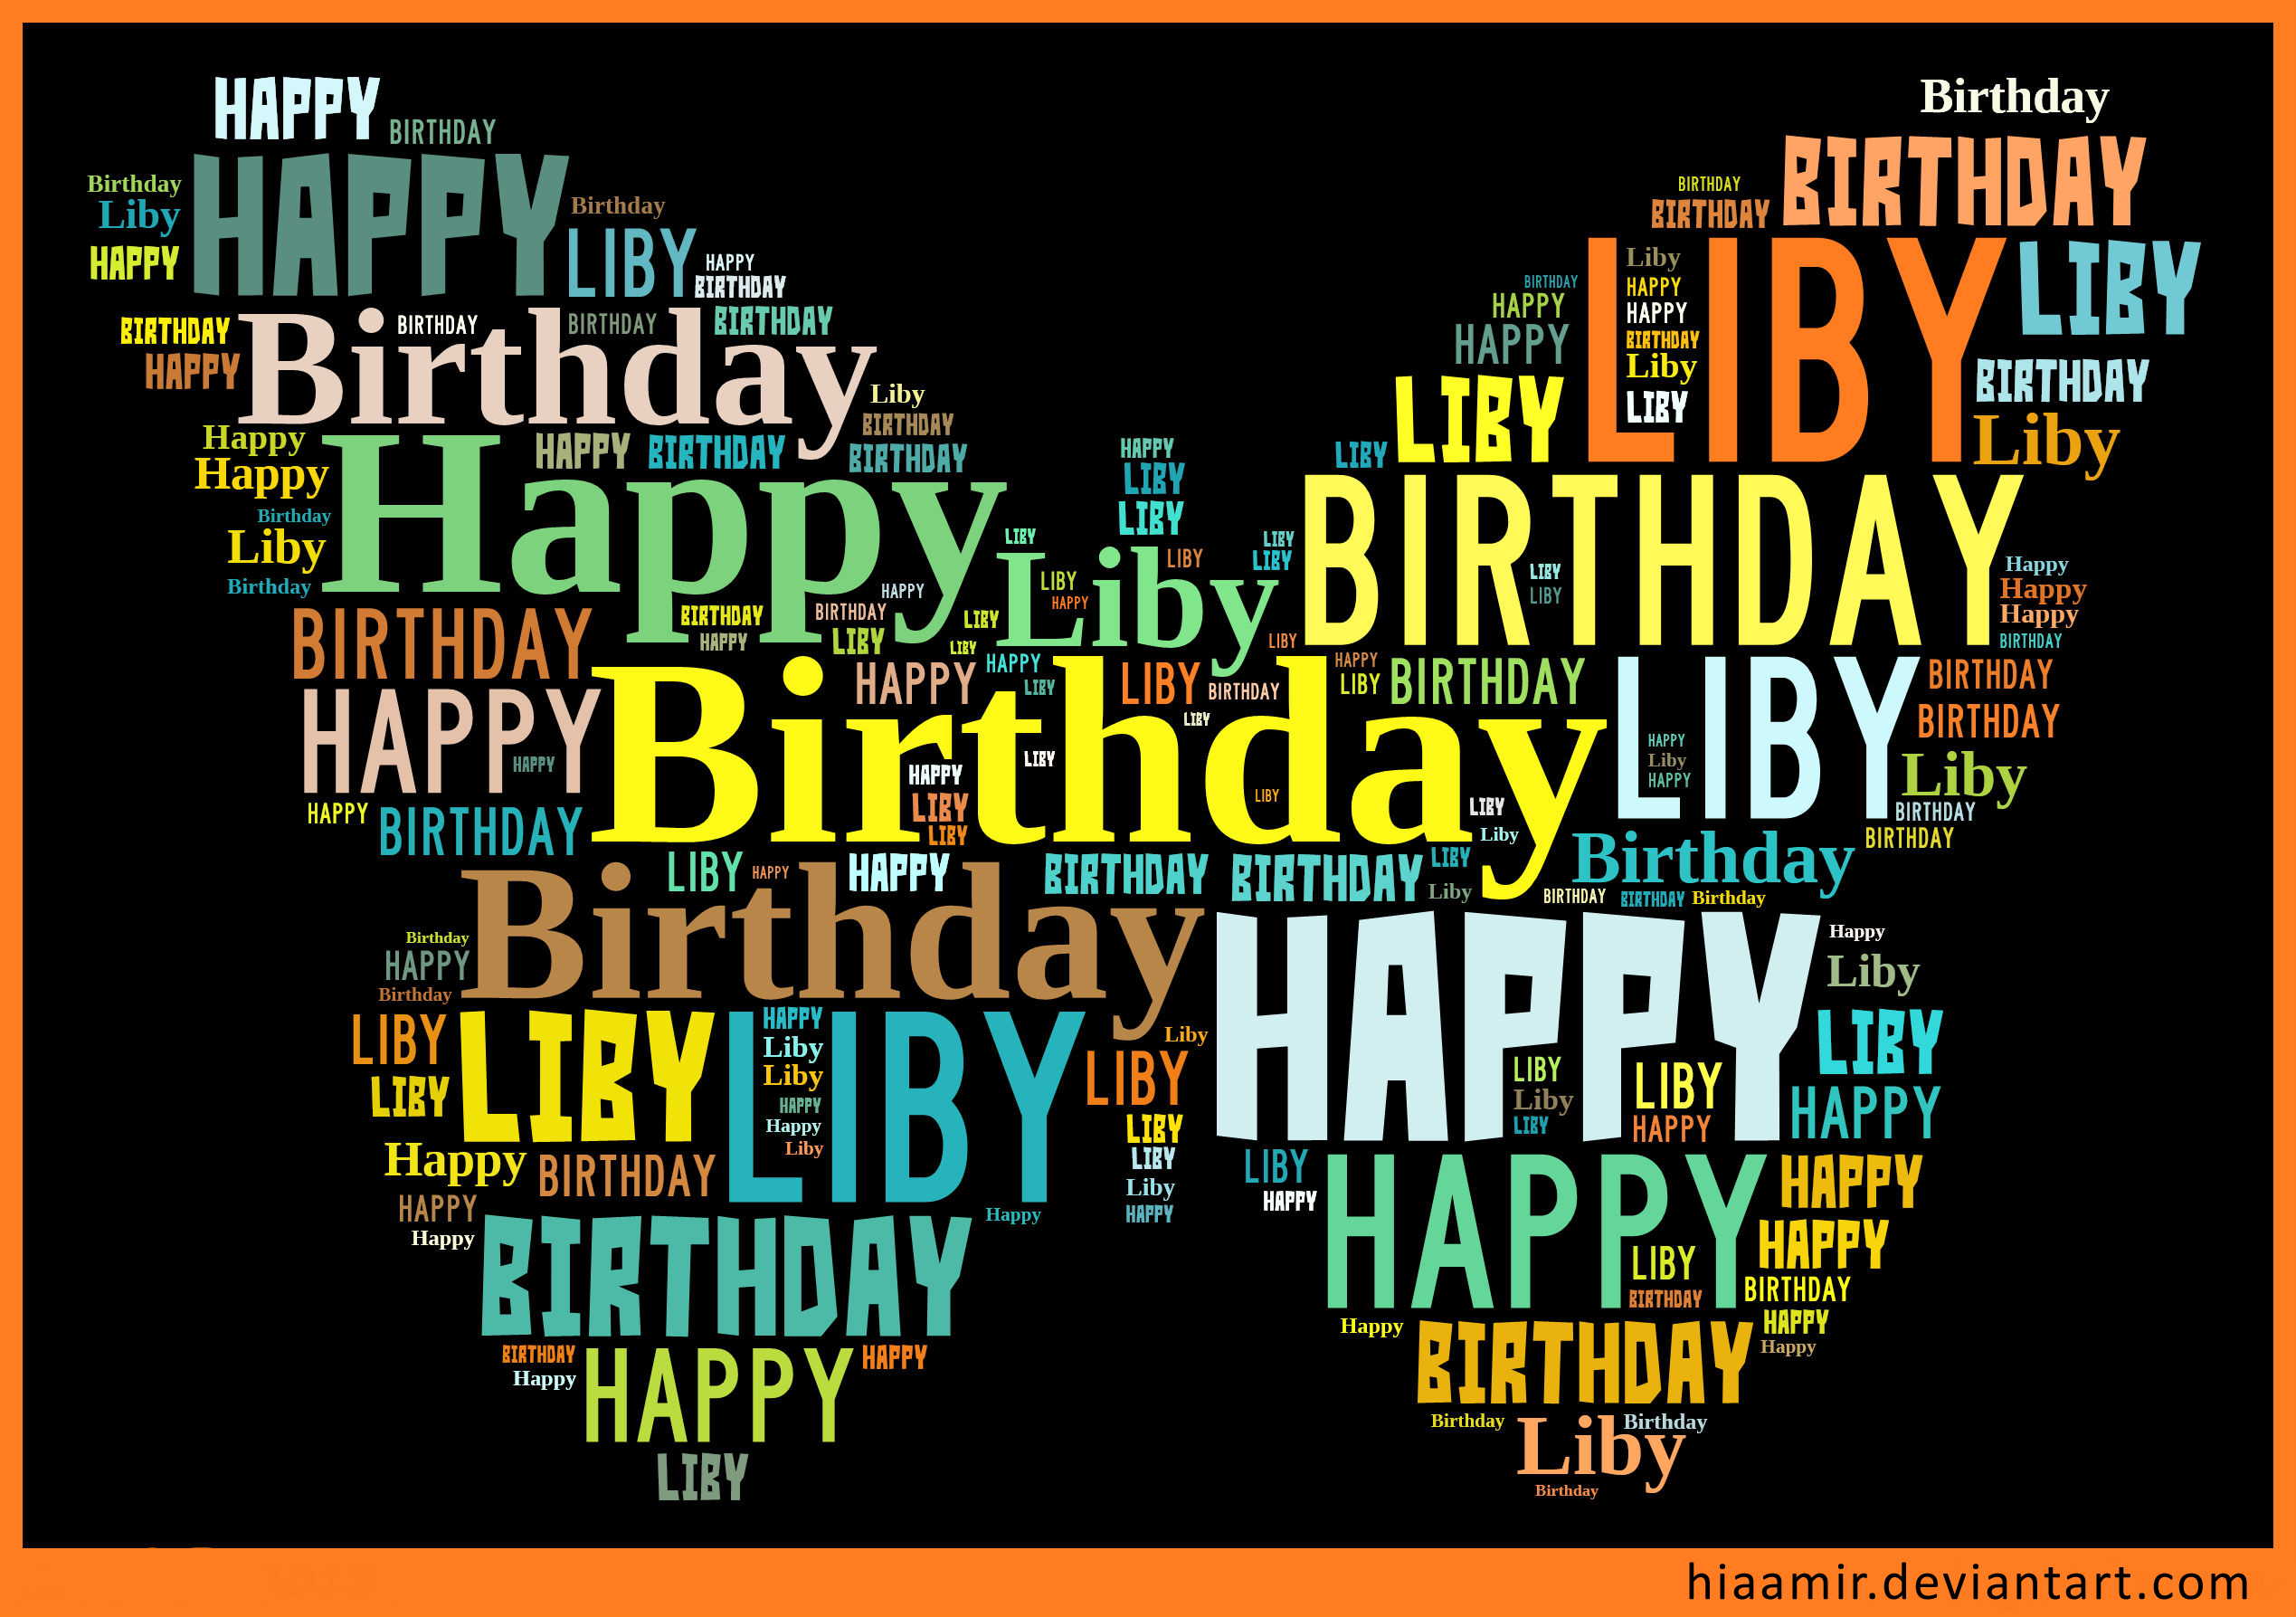 Happy Birthday Liby by hiaamir